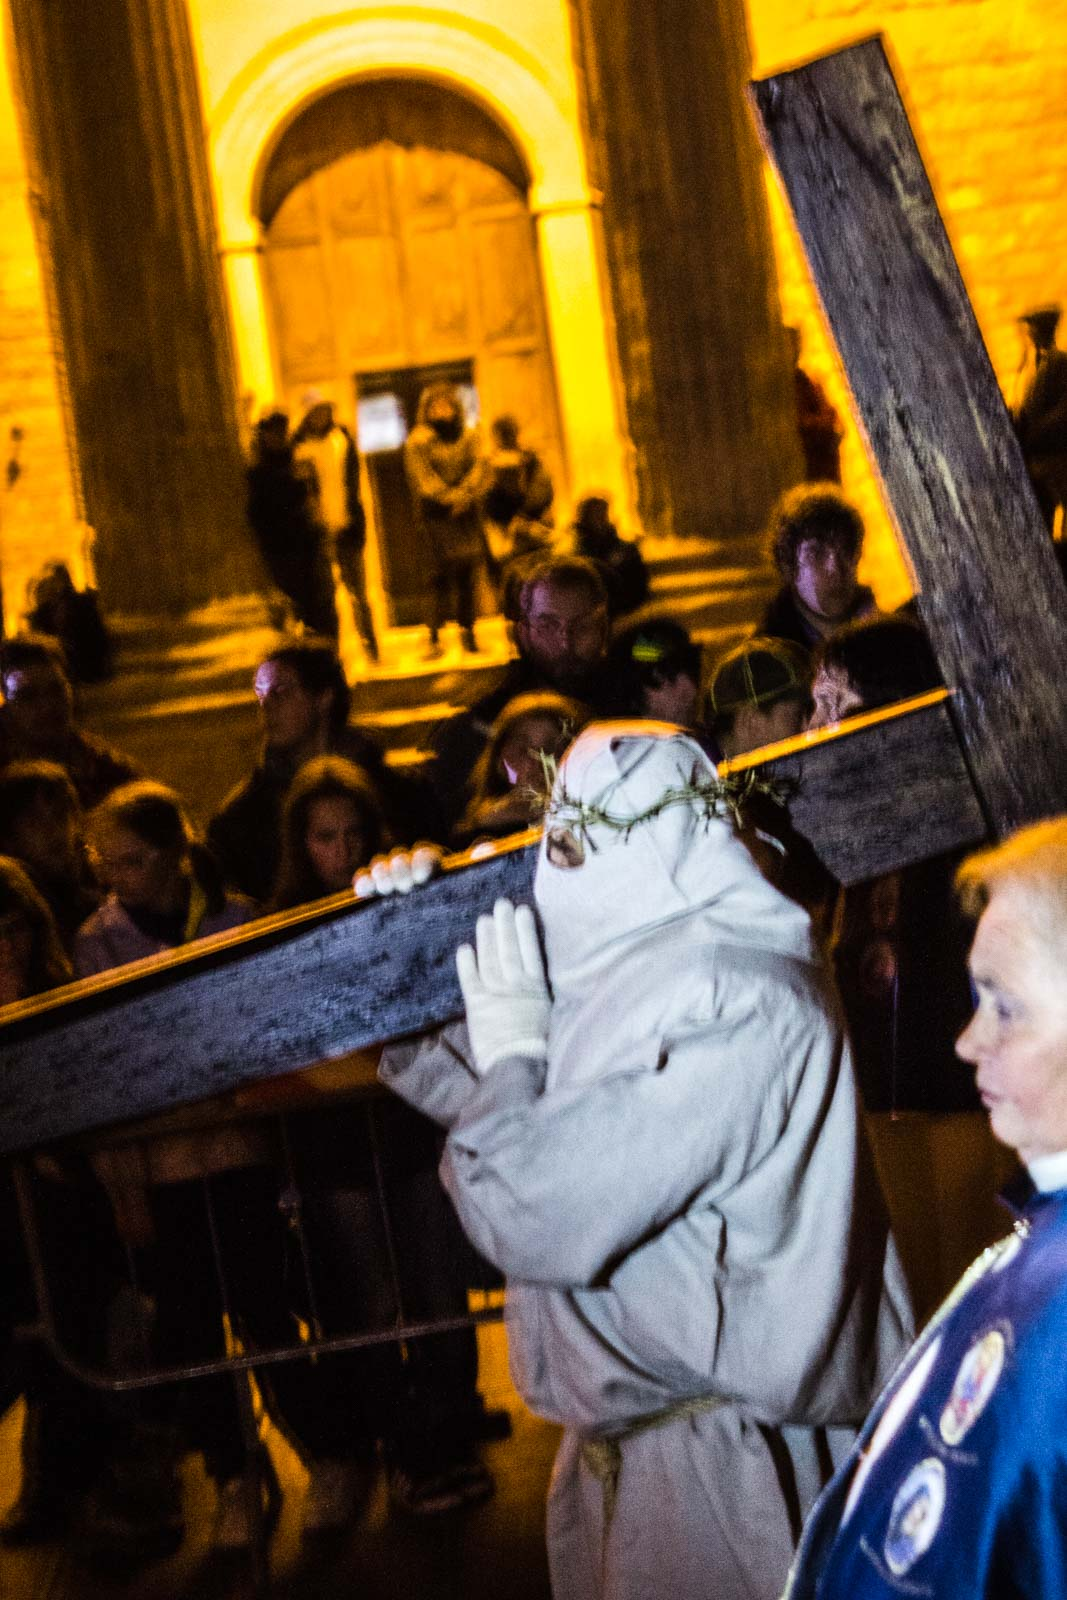 Procession on Good Friday in Assisi, Italy